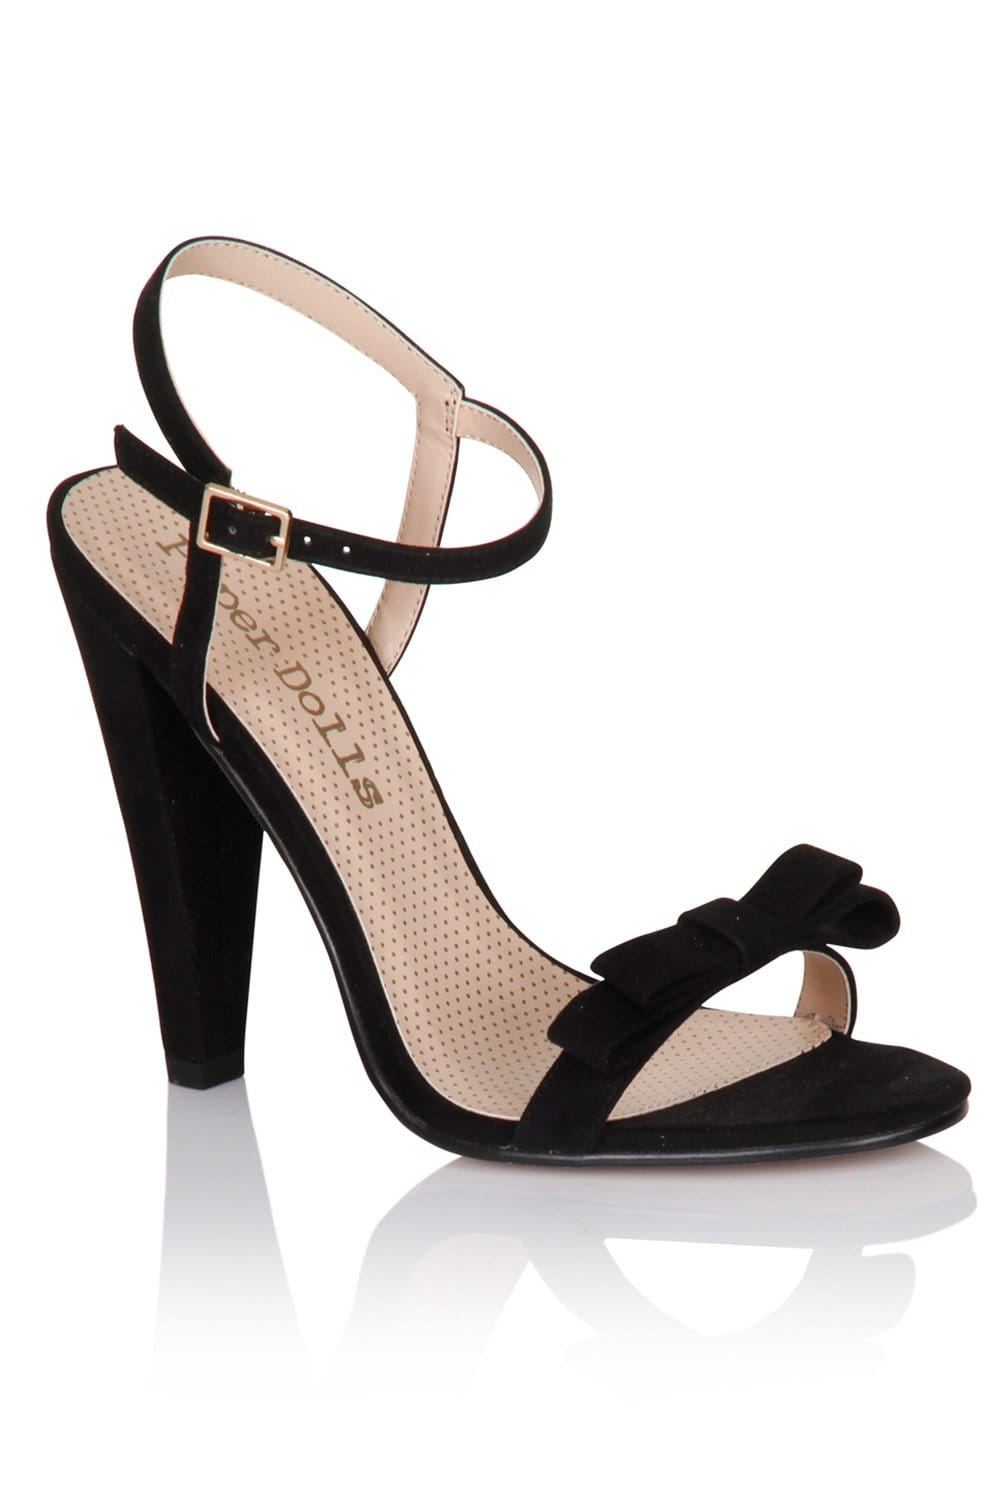 christian louboutin pumps outlet gb00  heels outlet